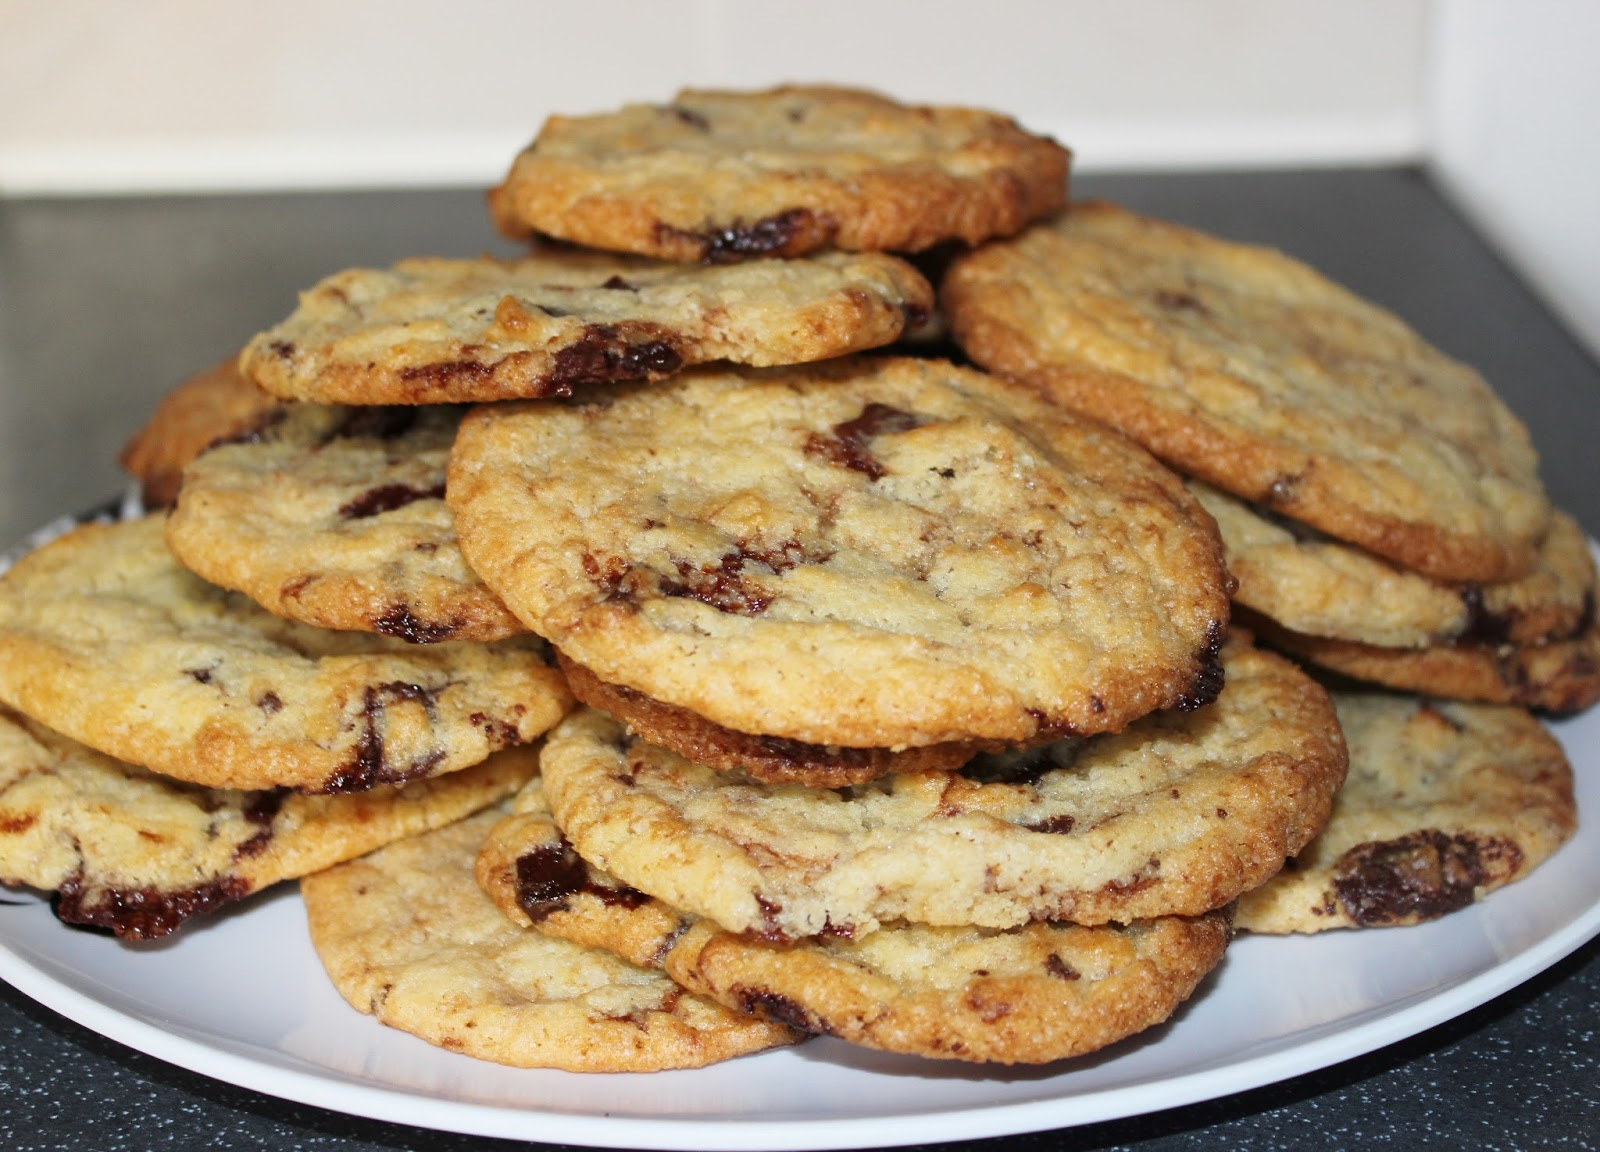 american style chocolate chip cookies fresh out the oven